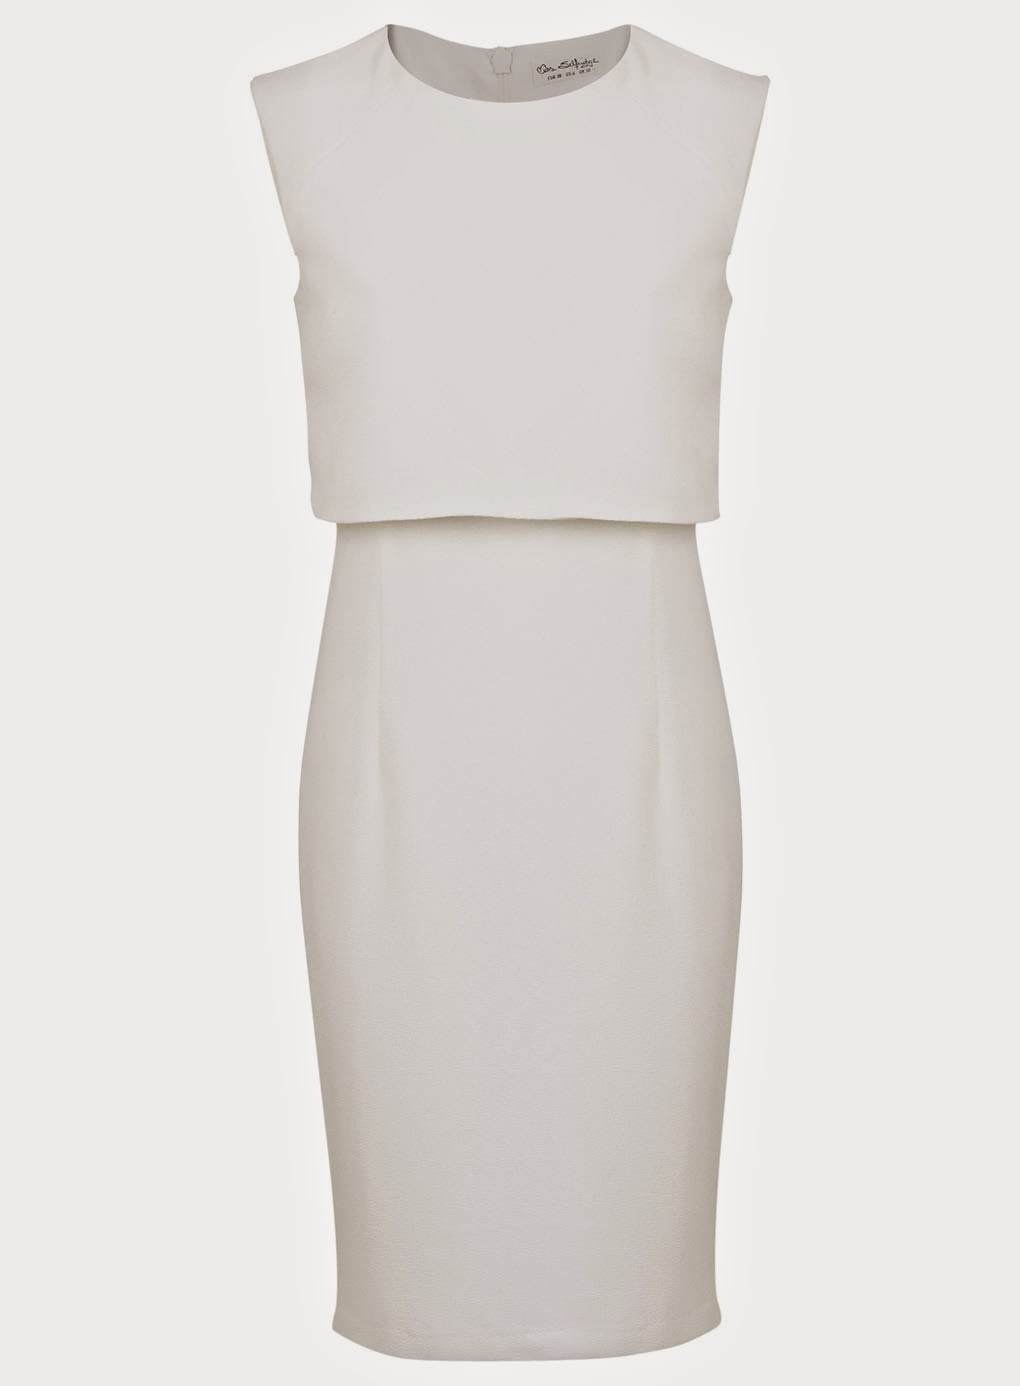 white layered dress, miss selfridge white dress, white pencil dress,